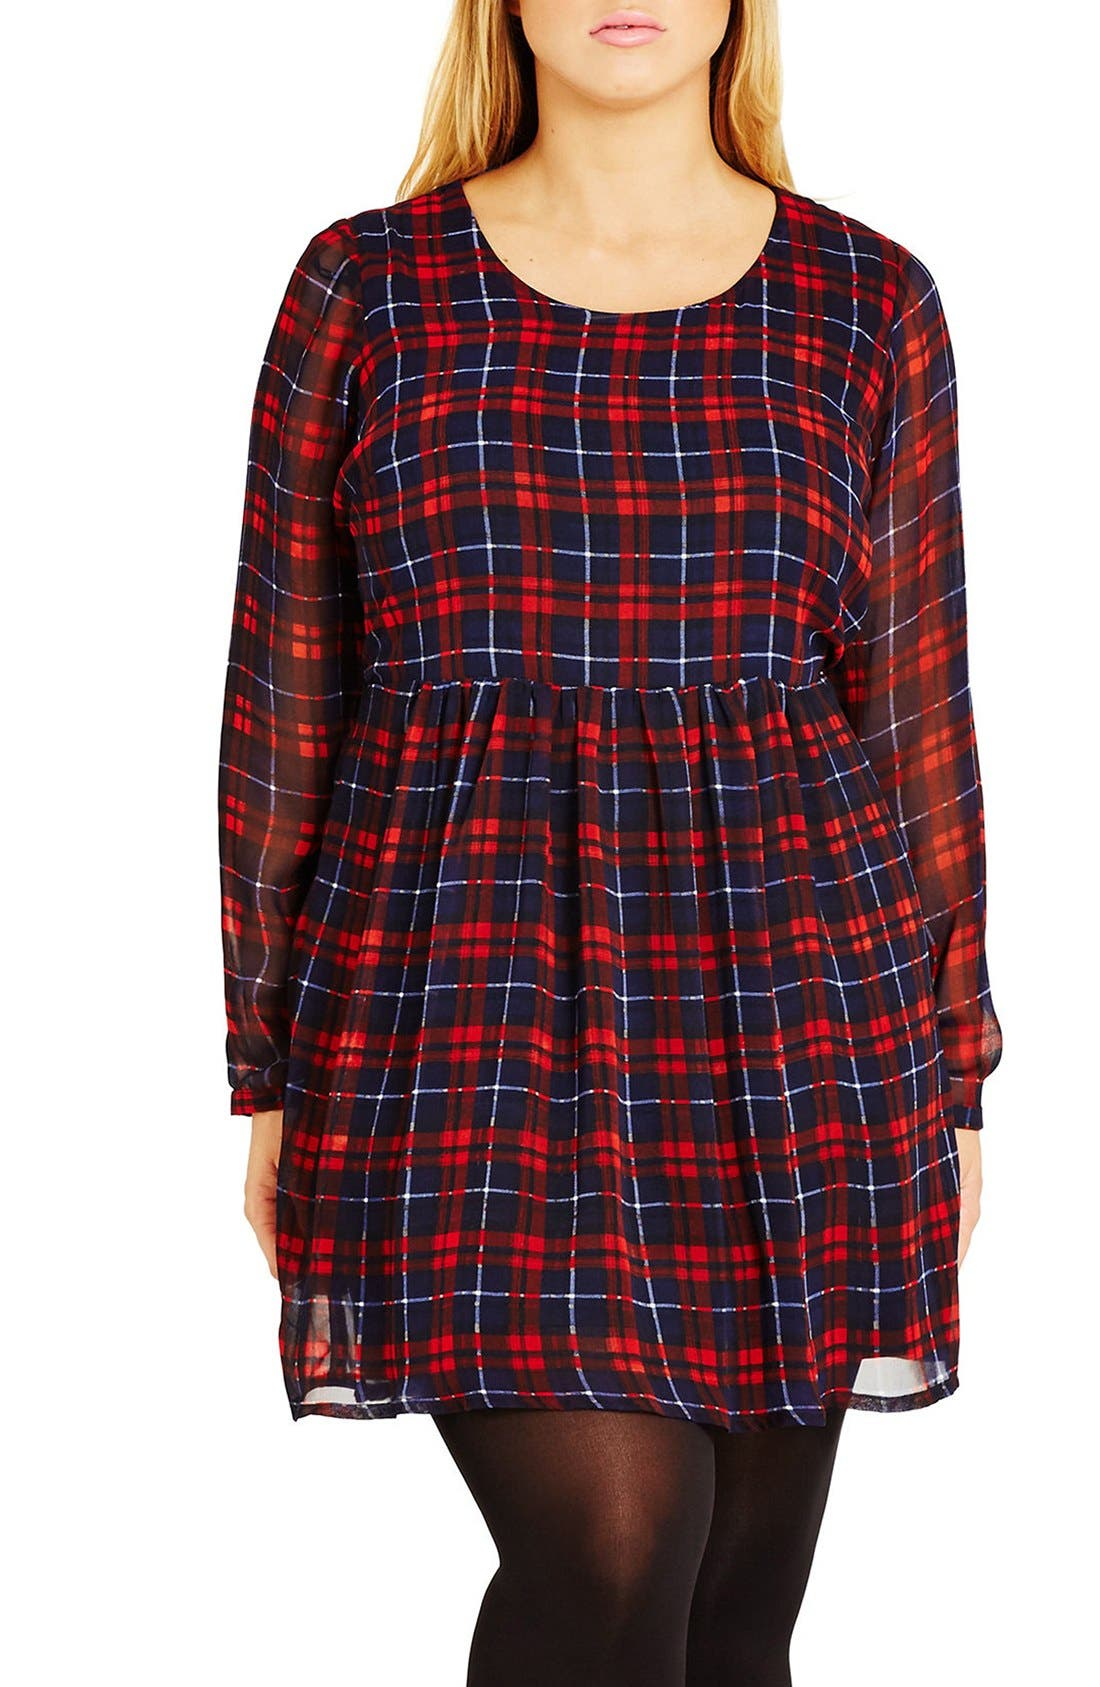 CITY CHIC 'Check Me Out' Plaid Babydoll Dress